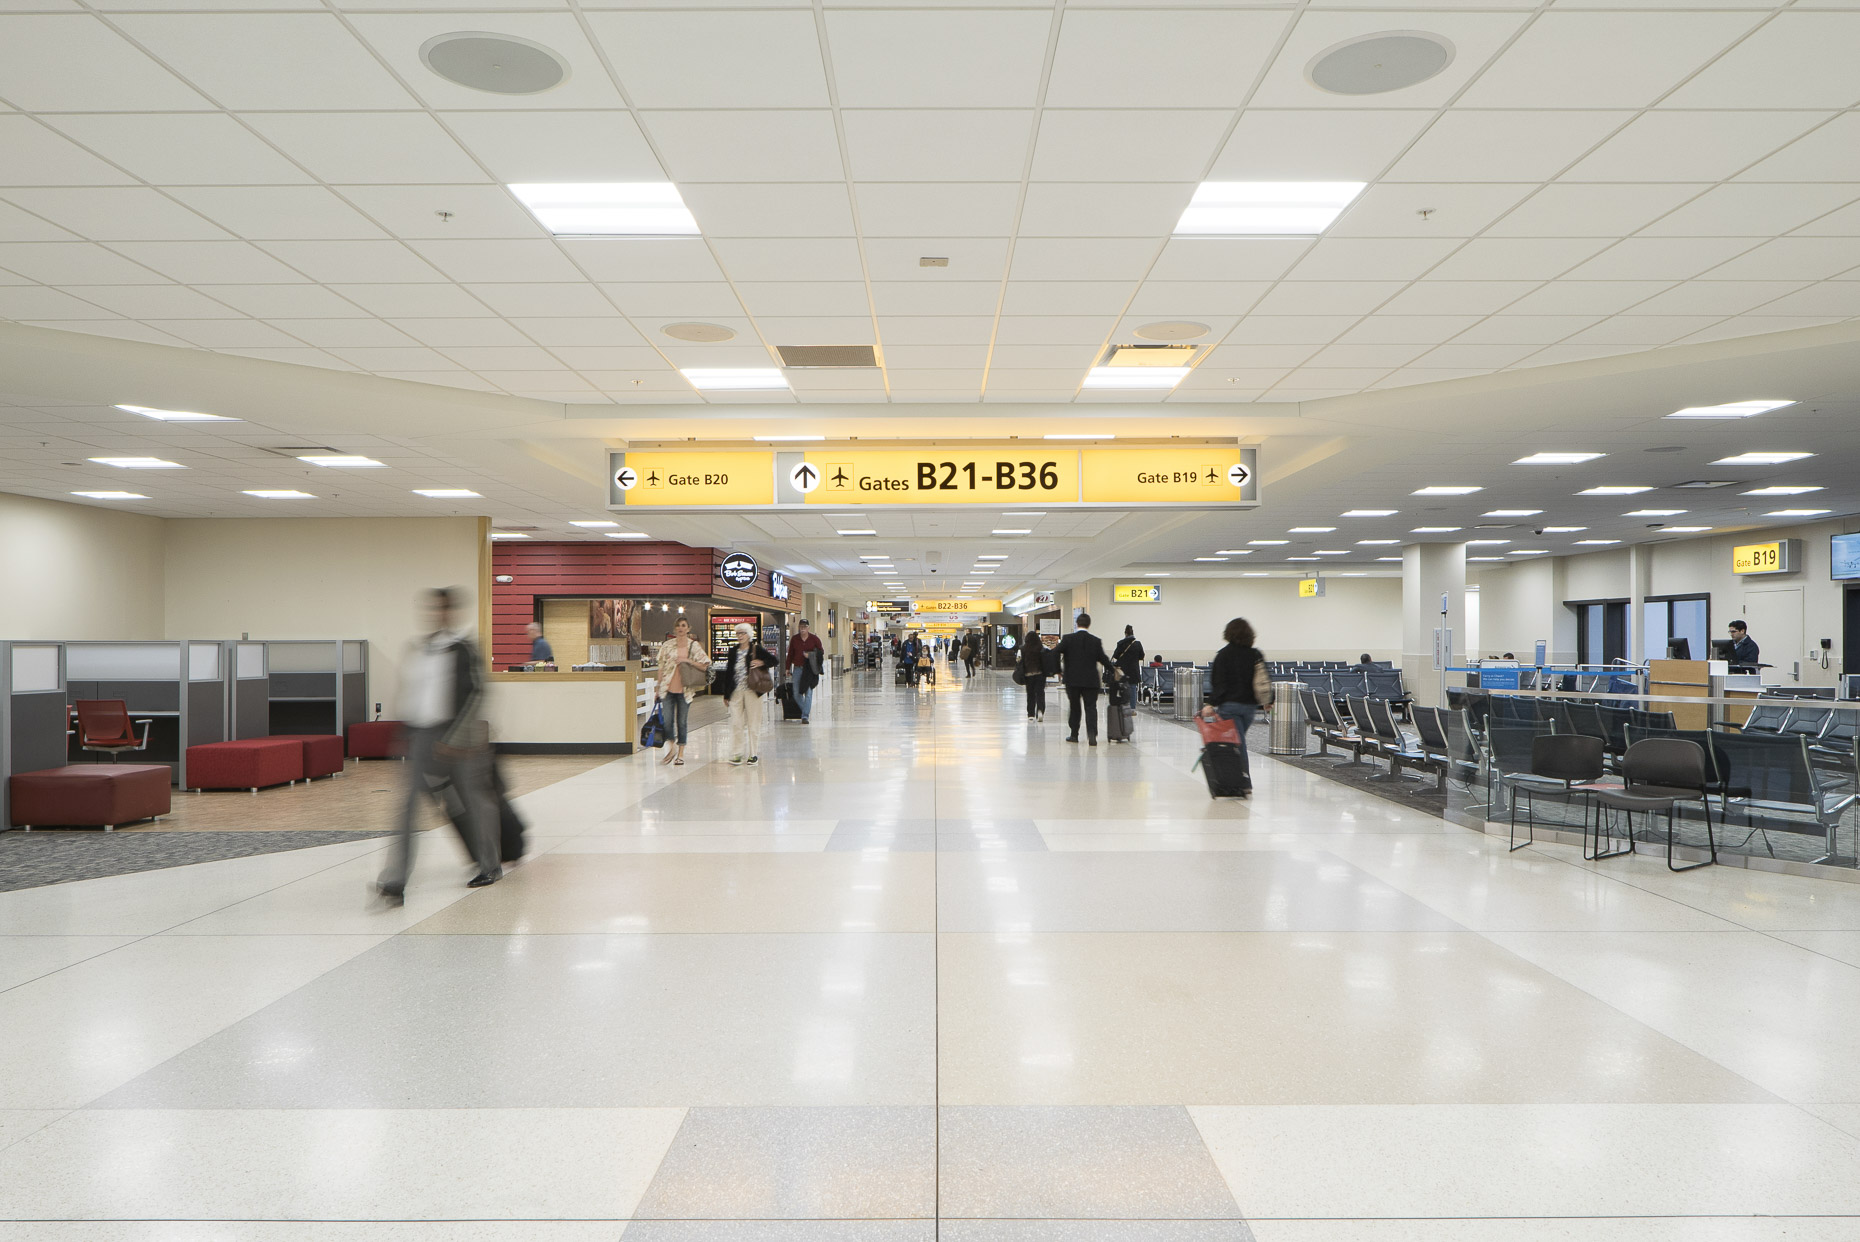 John Glenn International Airport Concourses B & C by Gilbane photographed by Lauren K Davis based in Columbus, Ohio